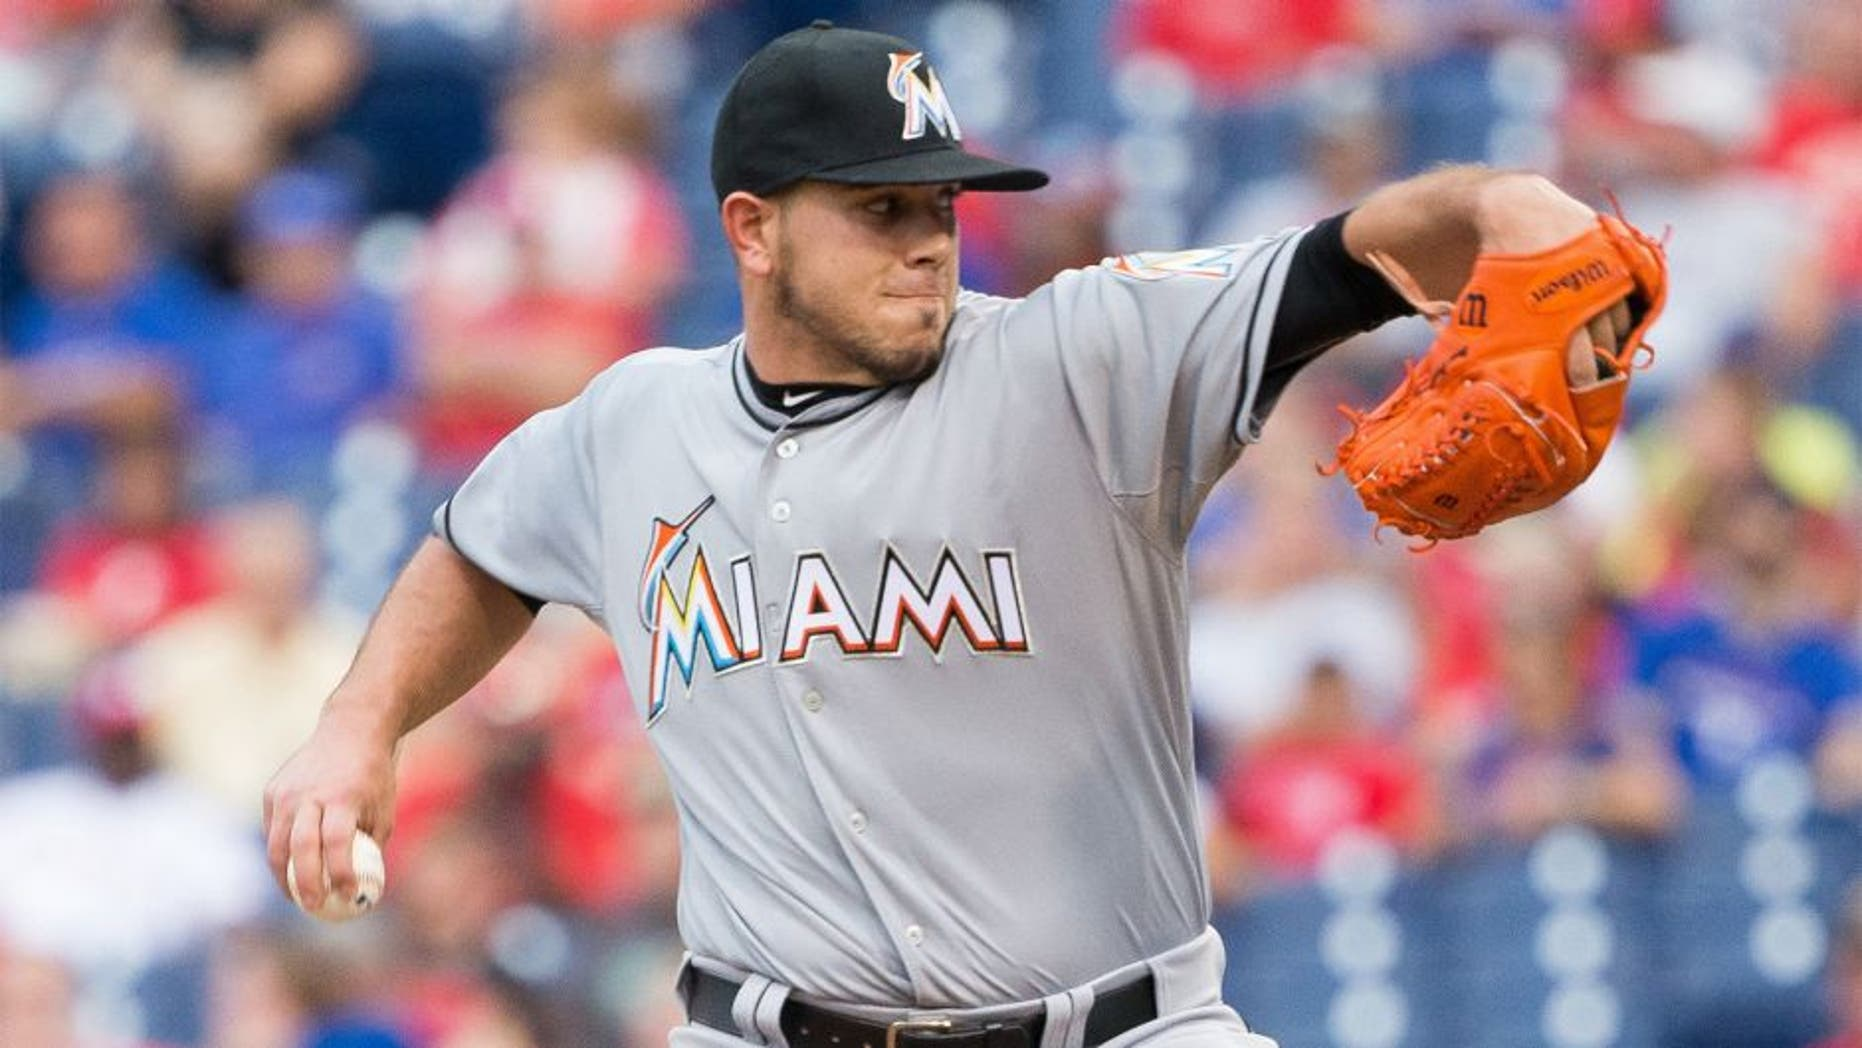 Jul 17, 2015; Philadelphia, PA, USA; Miami Marlins starting pitcher Jose Fernandez (16) pitches against the Philadelphia Phillies during the first inning at Citizens Bank Park. Mandatory Credit: Bill Streicher-USA TODAY Sports